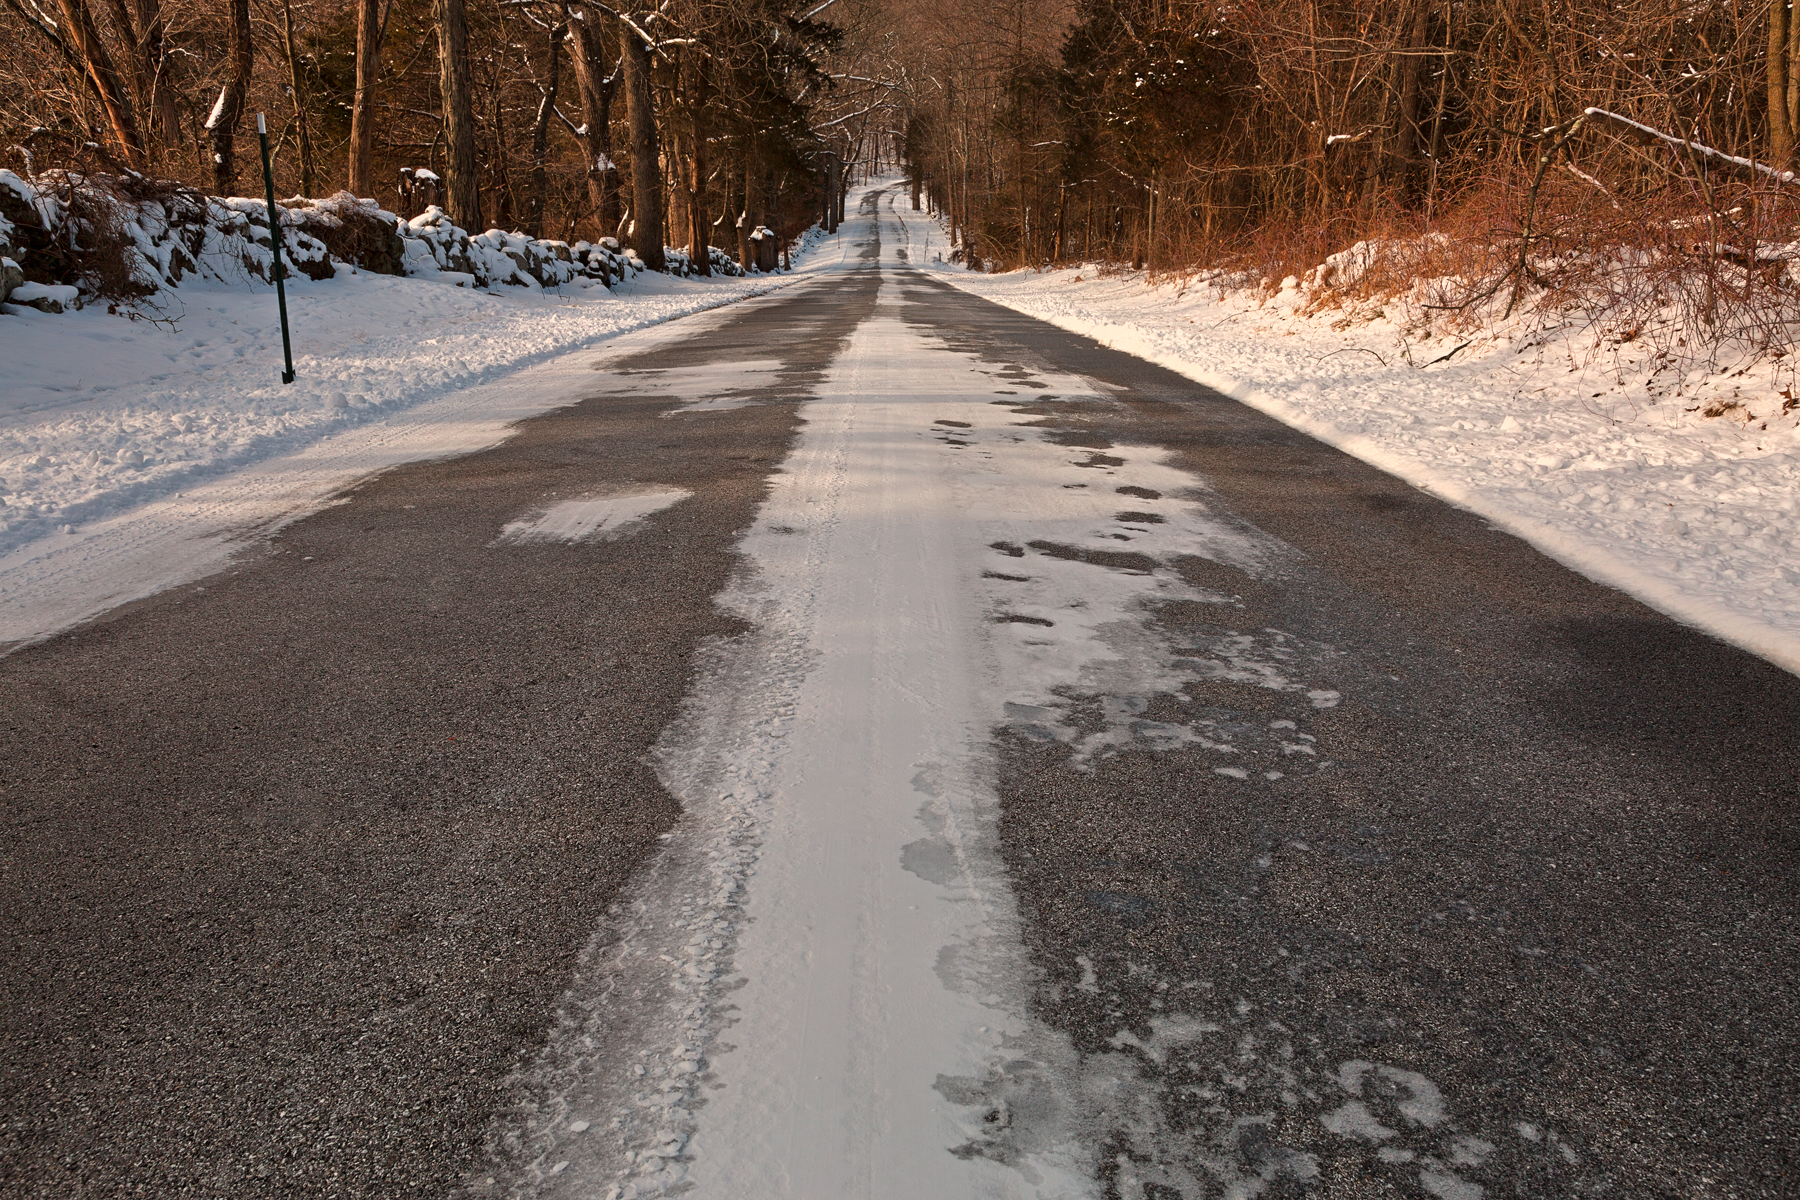 Long winter road - hdr photo